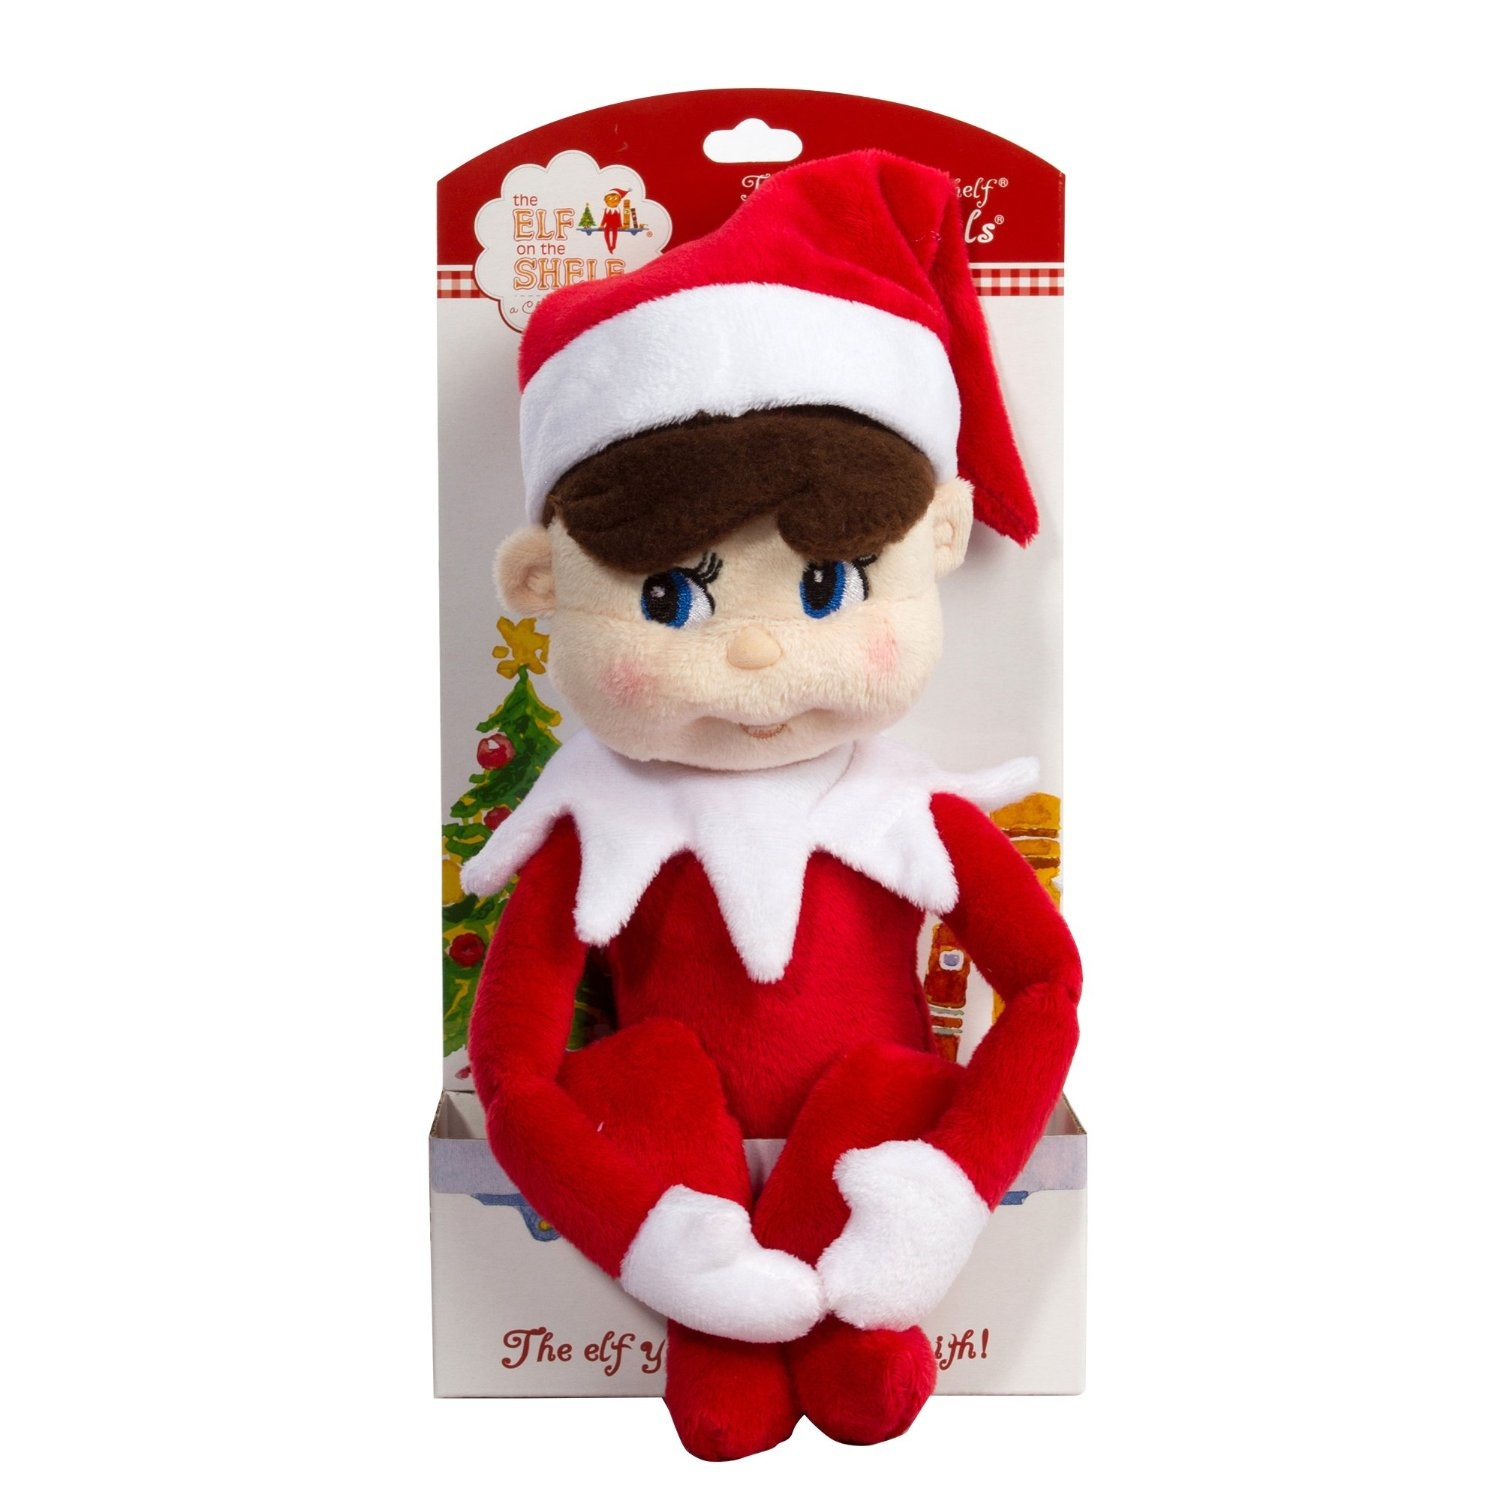 The Elf on the Shelf: A Christmas Tradition Elf on the Shelf Gift Set - Light Skinned Boy